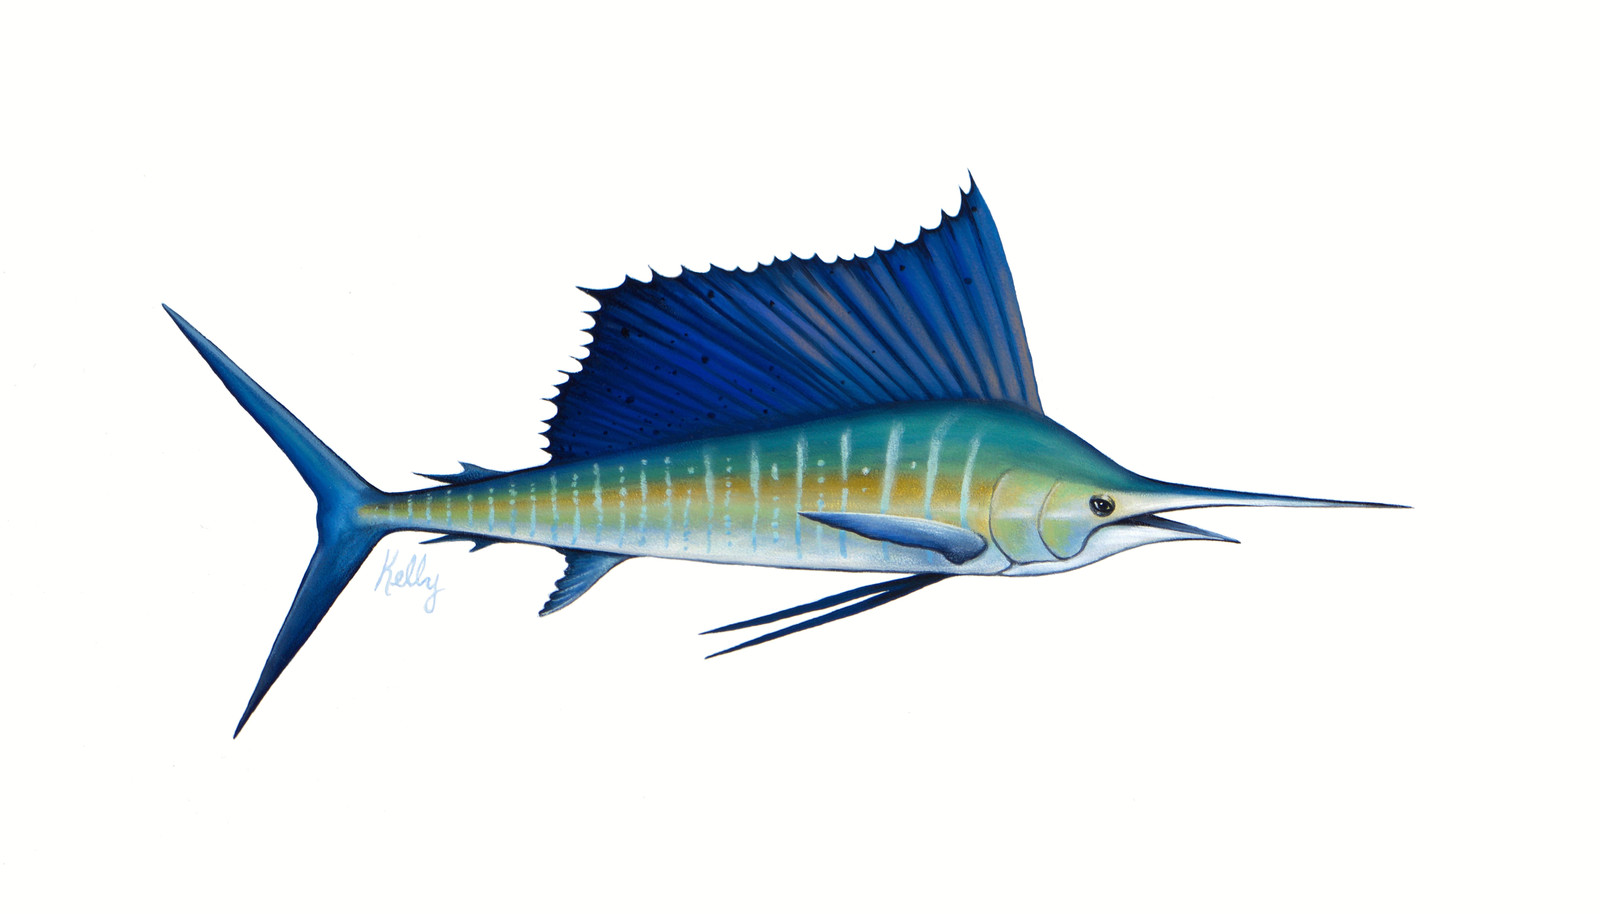 Sailfish | The art of Kelly Meagher